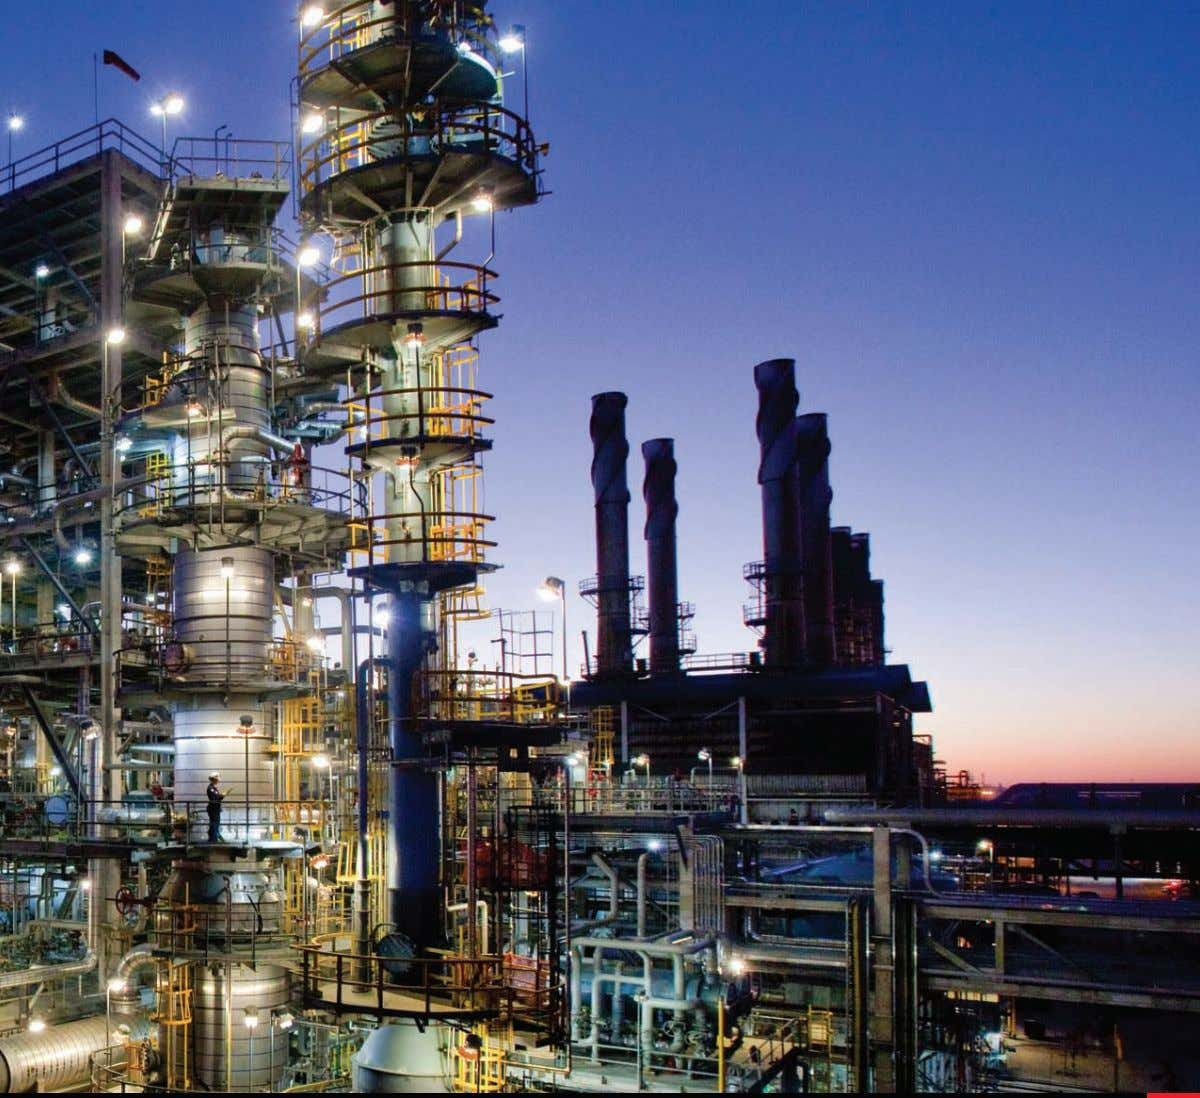 COMPETITIvE AdvANTAGES 21 Balanced Portfolio Quality • We are the world's largest integrated refiner, manufacturer